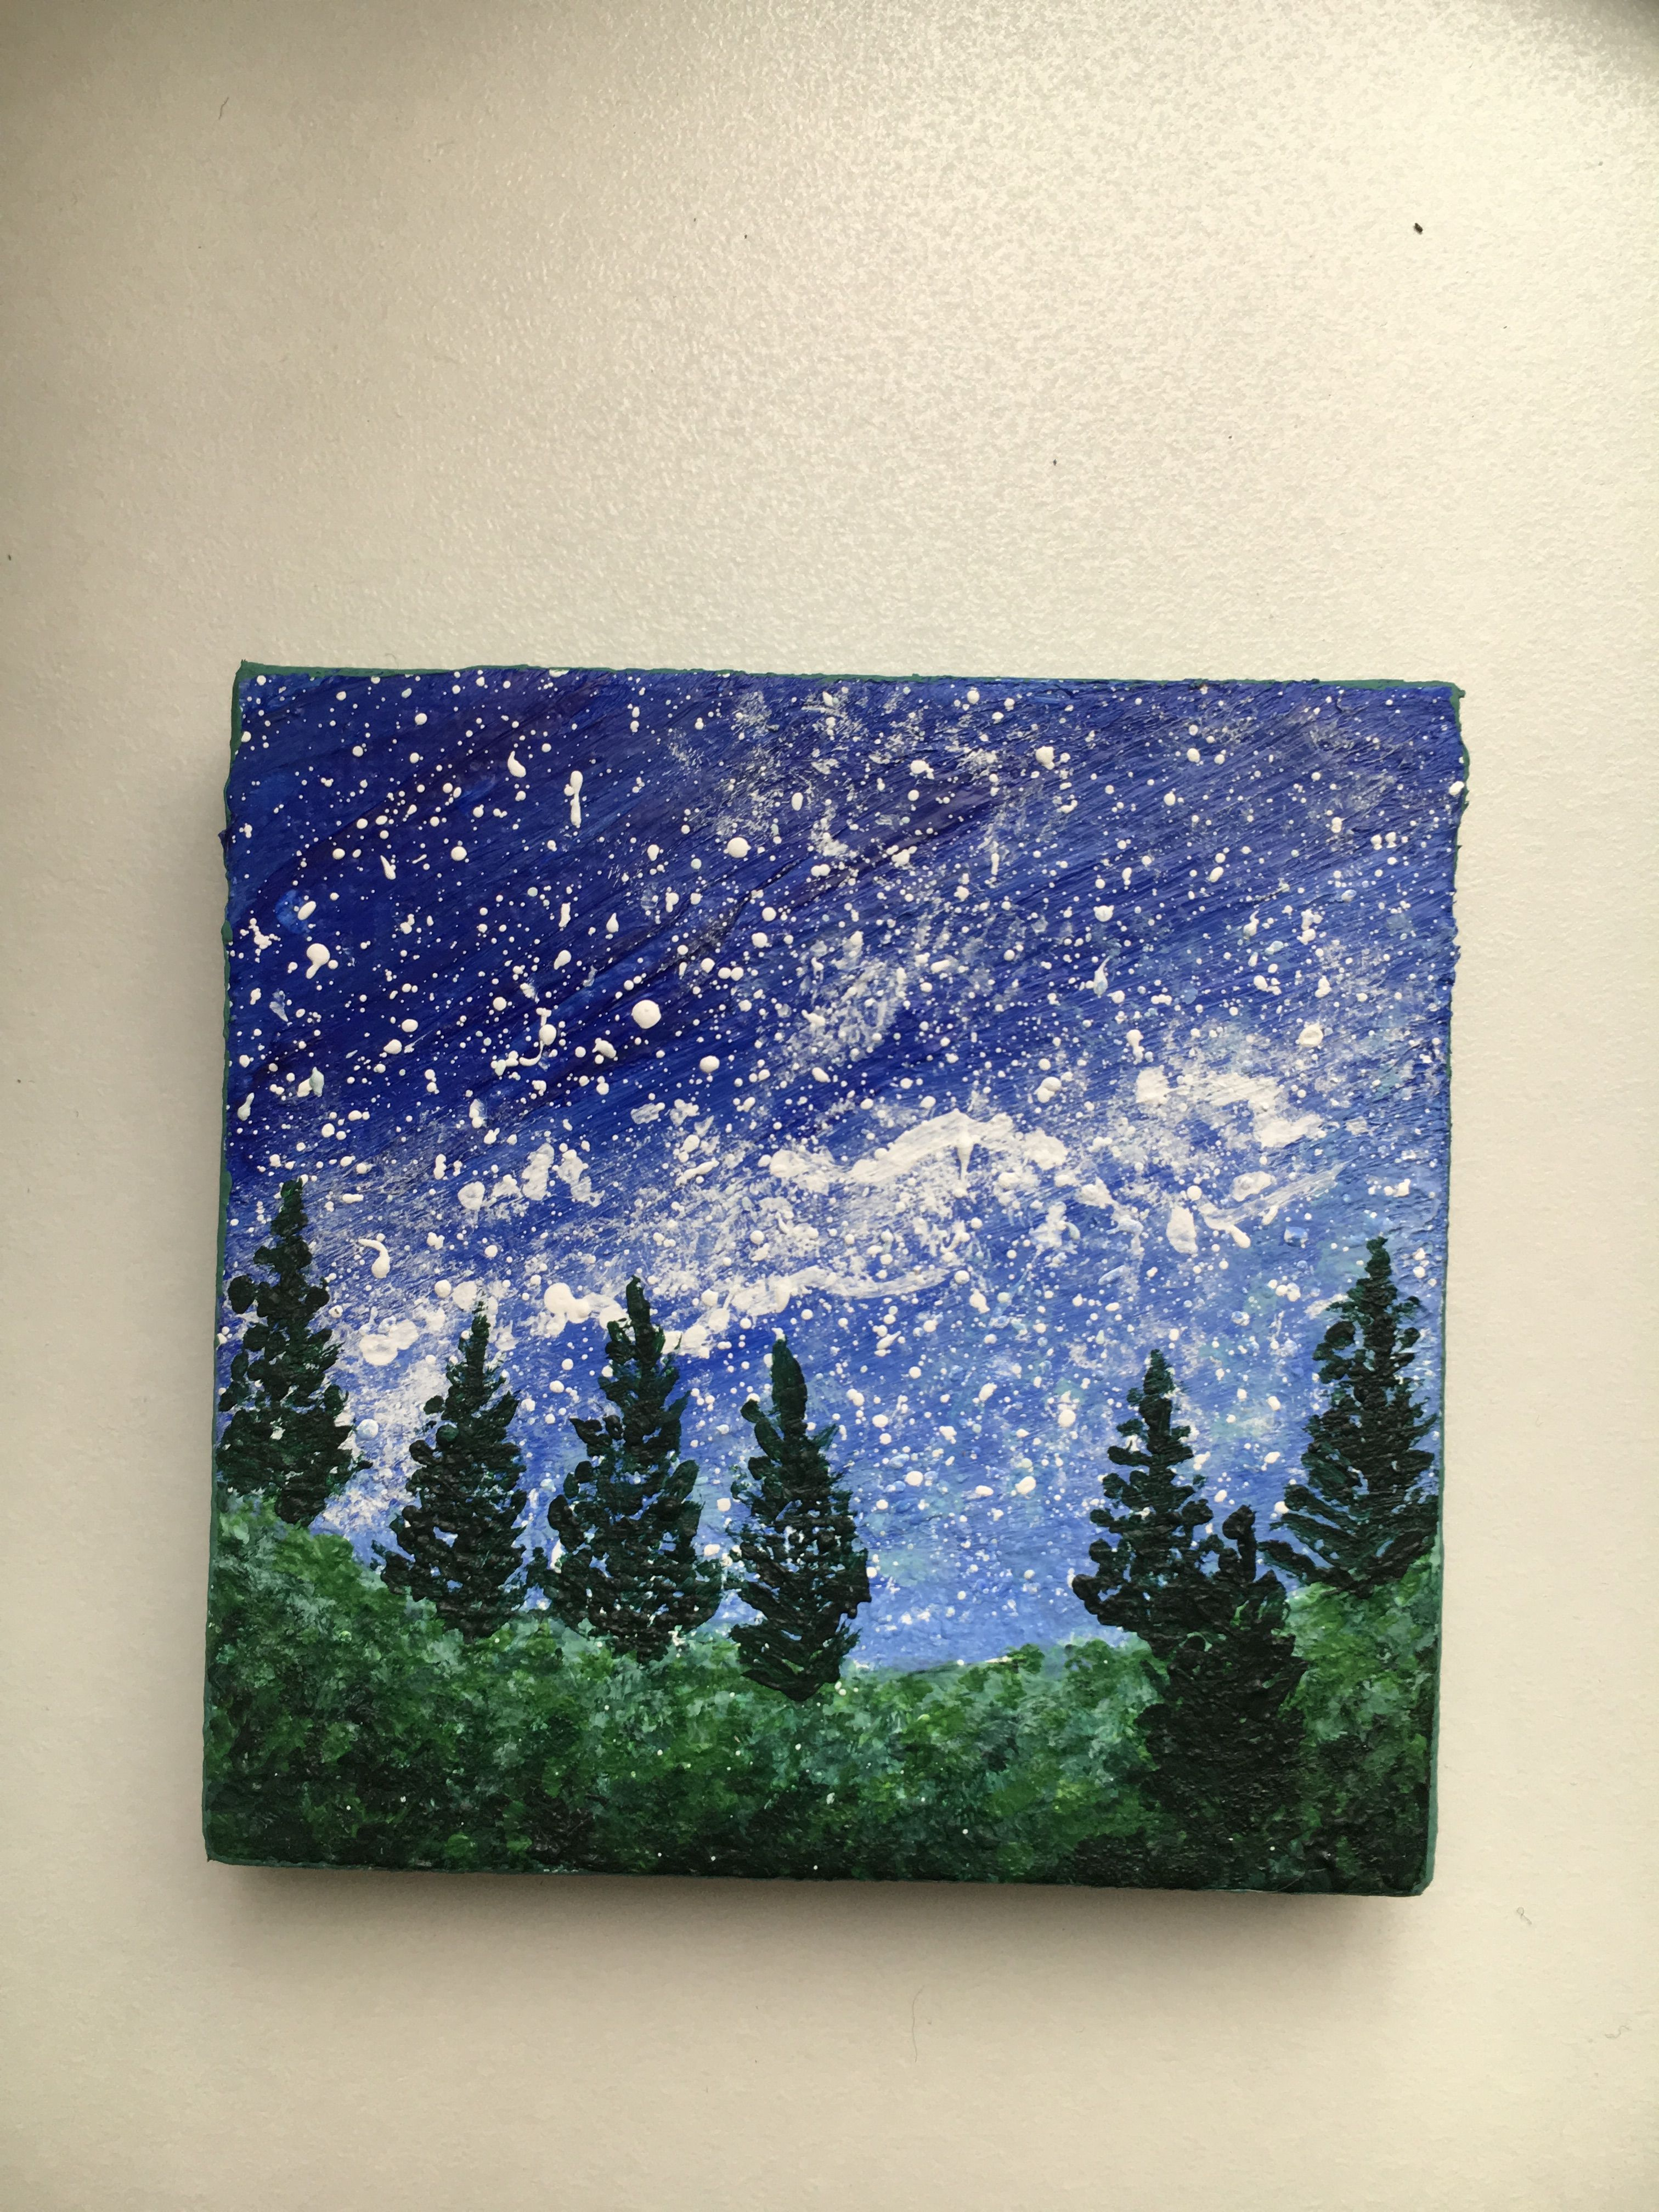 Check out my other mini paintings mini canvas 2 5 x 2 5 wilderness dreams acrylic painting originally created